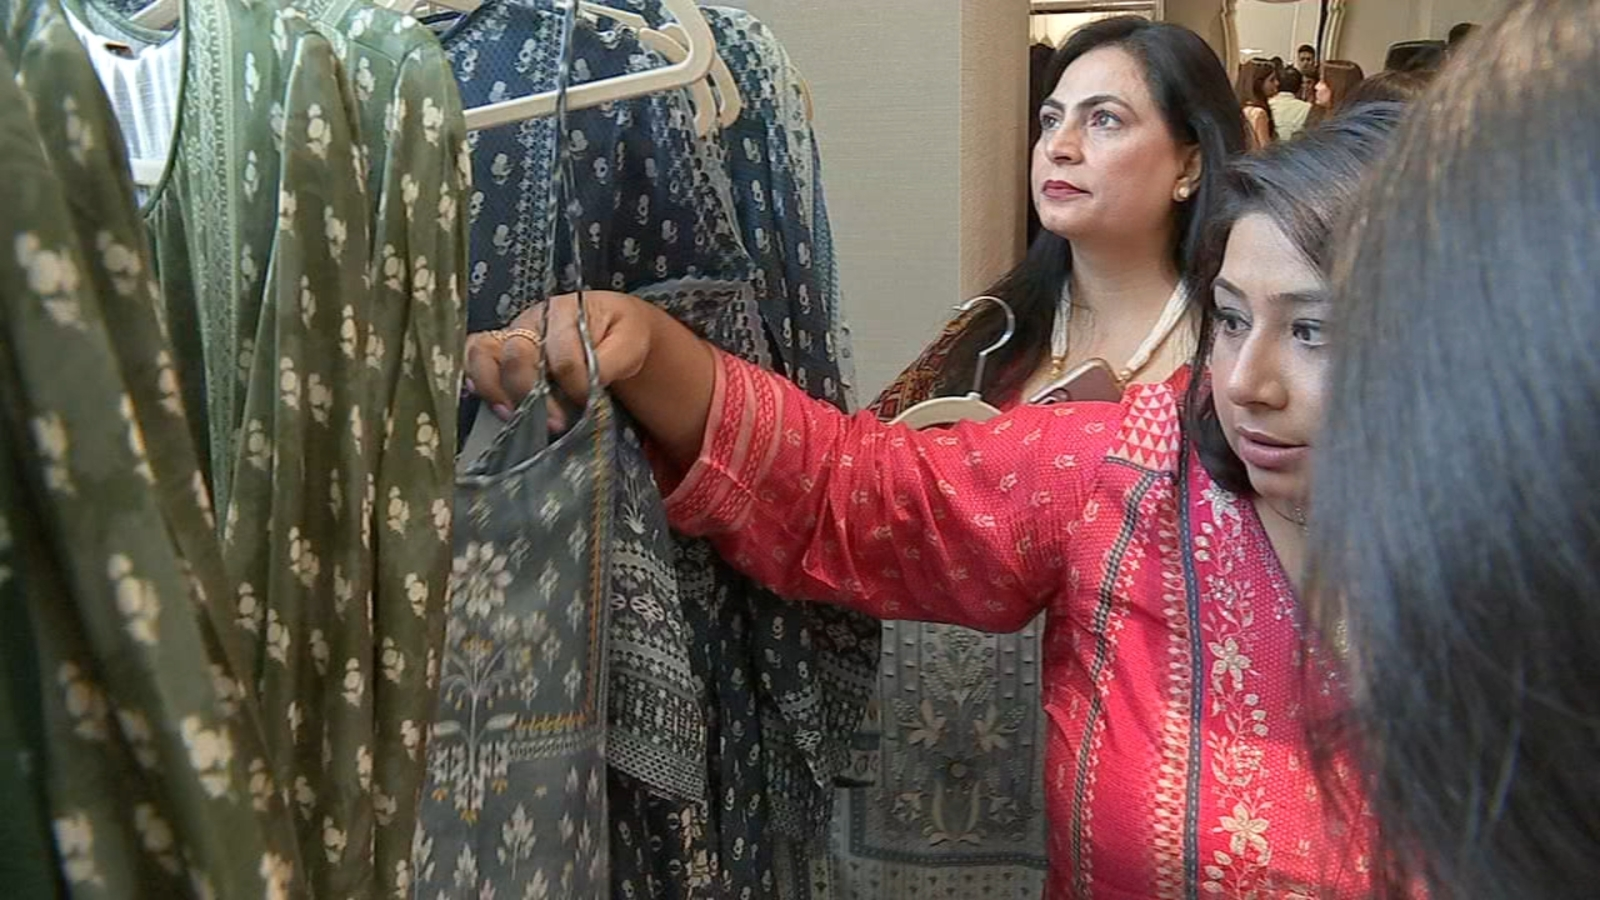 Anita Dongre Famous Indian Fashion Designer Hosts Show At Houston Hotel Abc13 Houston